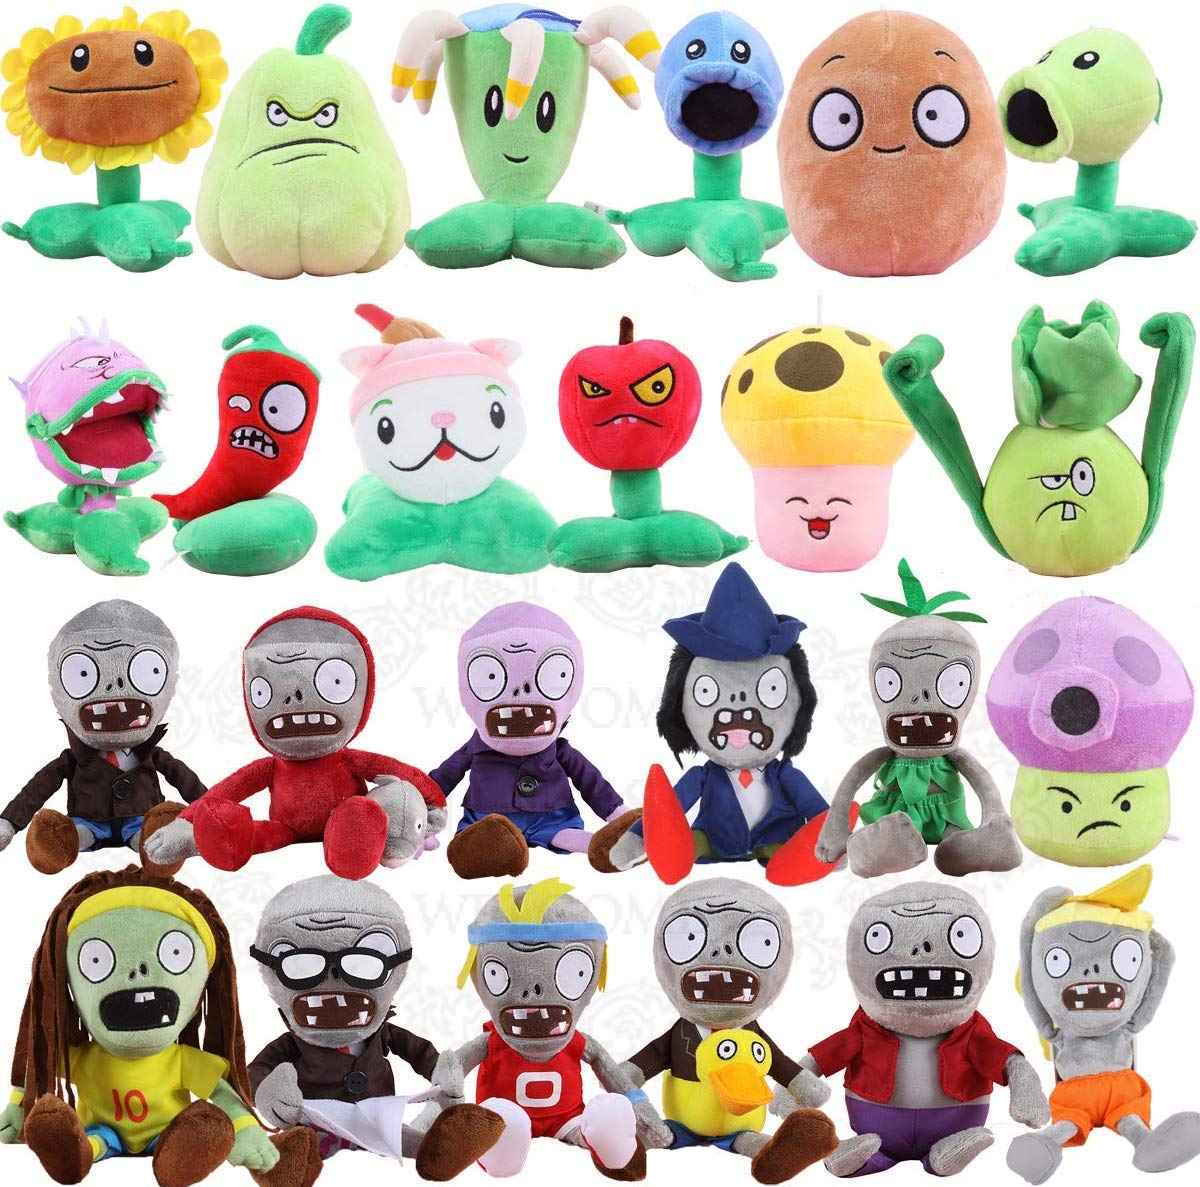 William Plants vs Zombies Set Plush Stuffed Toys PVZ Games Hot Doll Creative Birthday Gifts for Kids 24Pcs by William